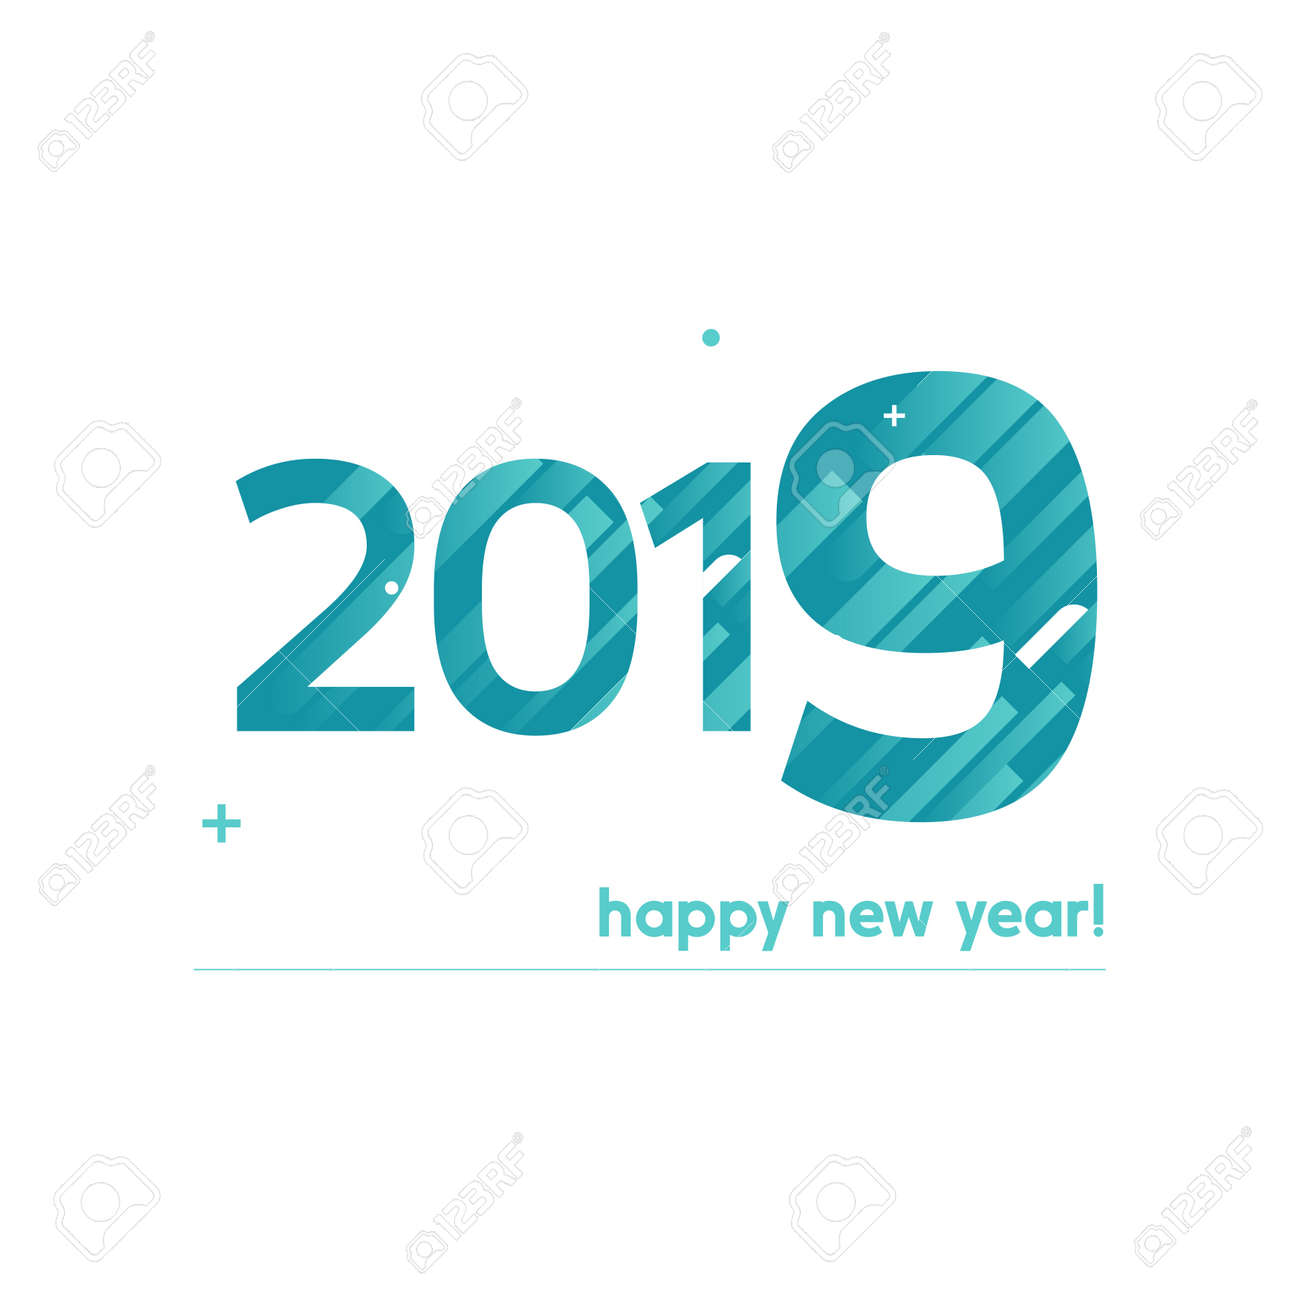 happy new year 2019 vector illustration bold text with creative design on white background